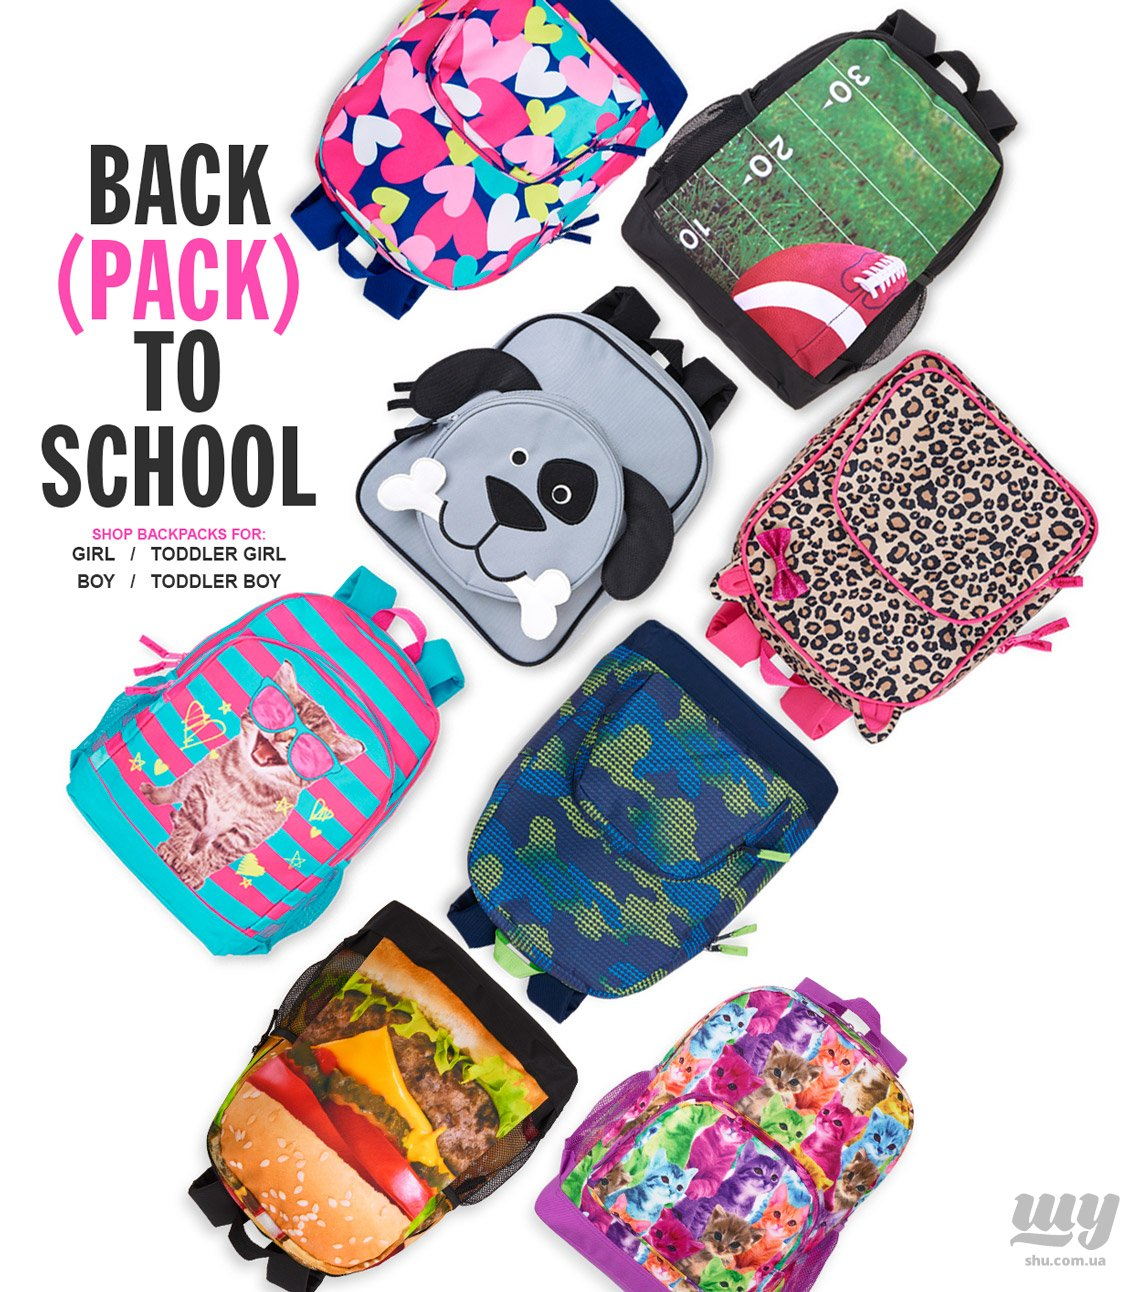 20150804-dp-access-backpacks.jpg